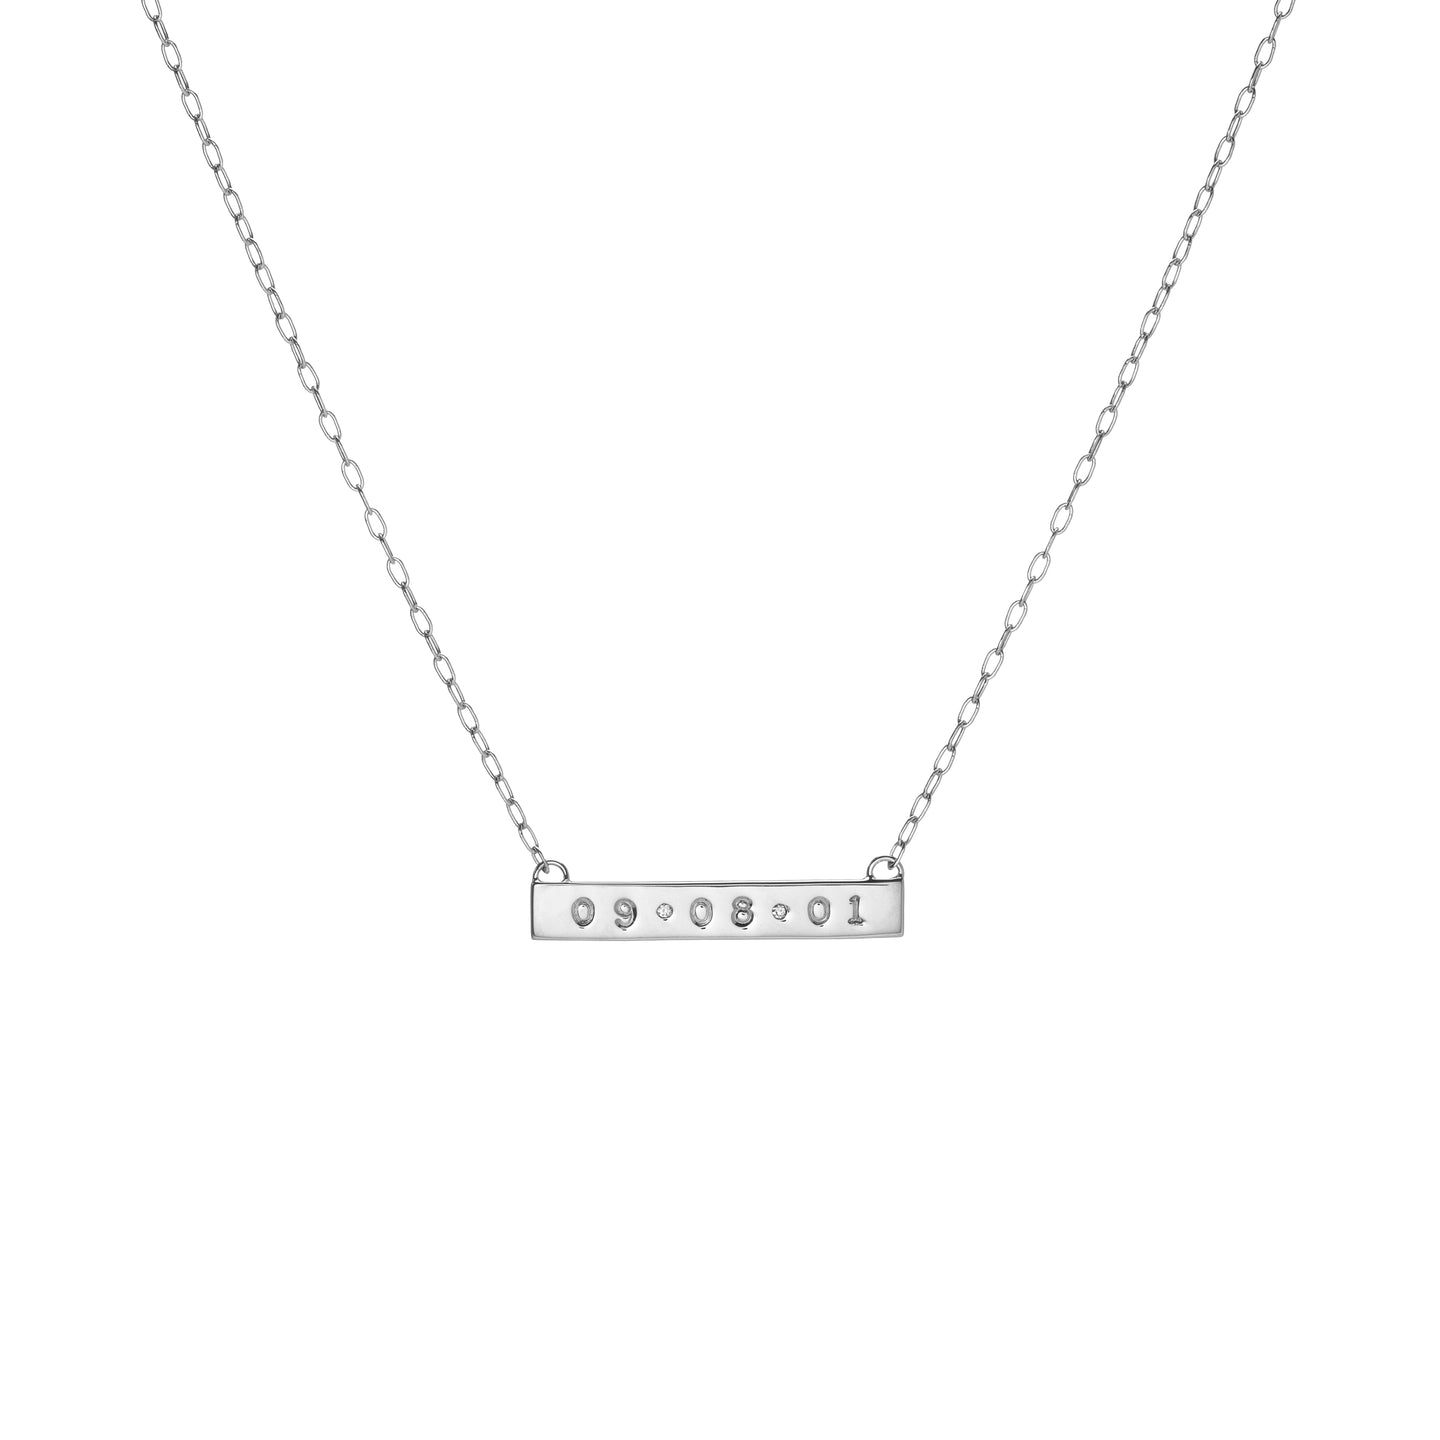 Mini Tall Dog Tag Bar Necklace with 2 White Diamonds